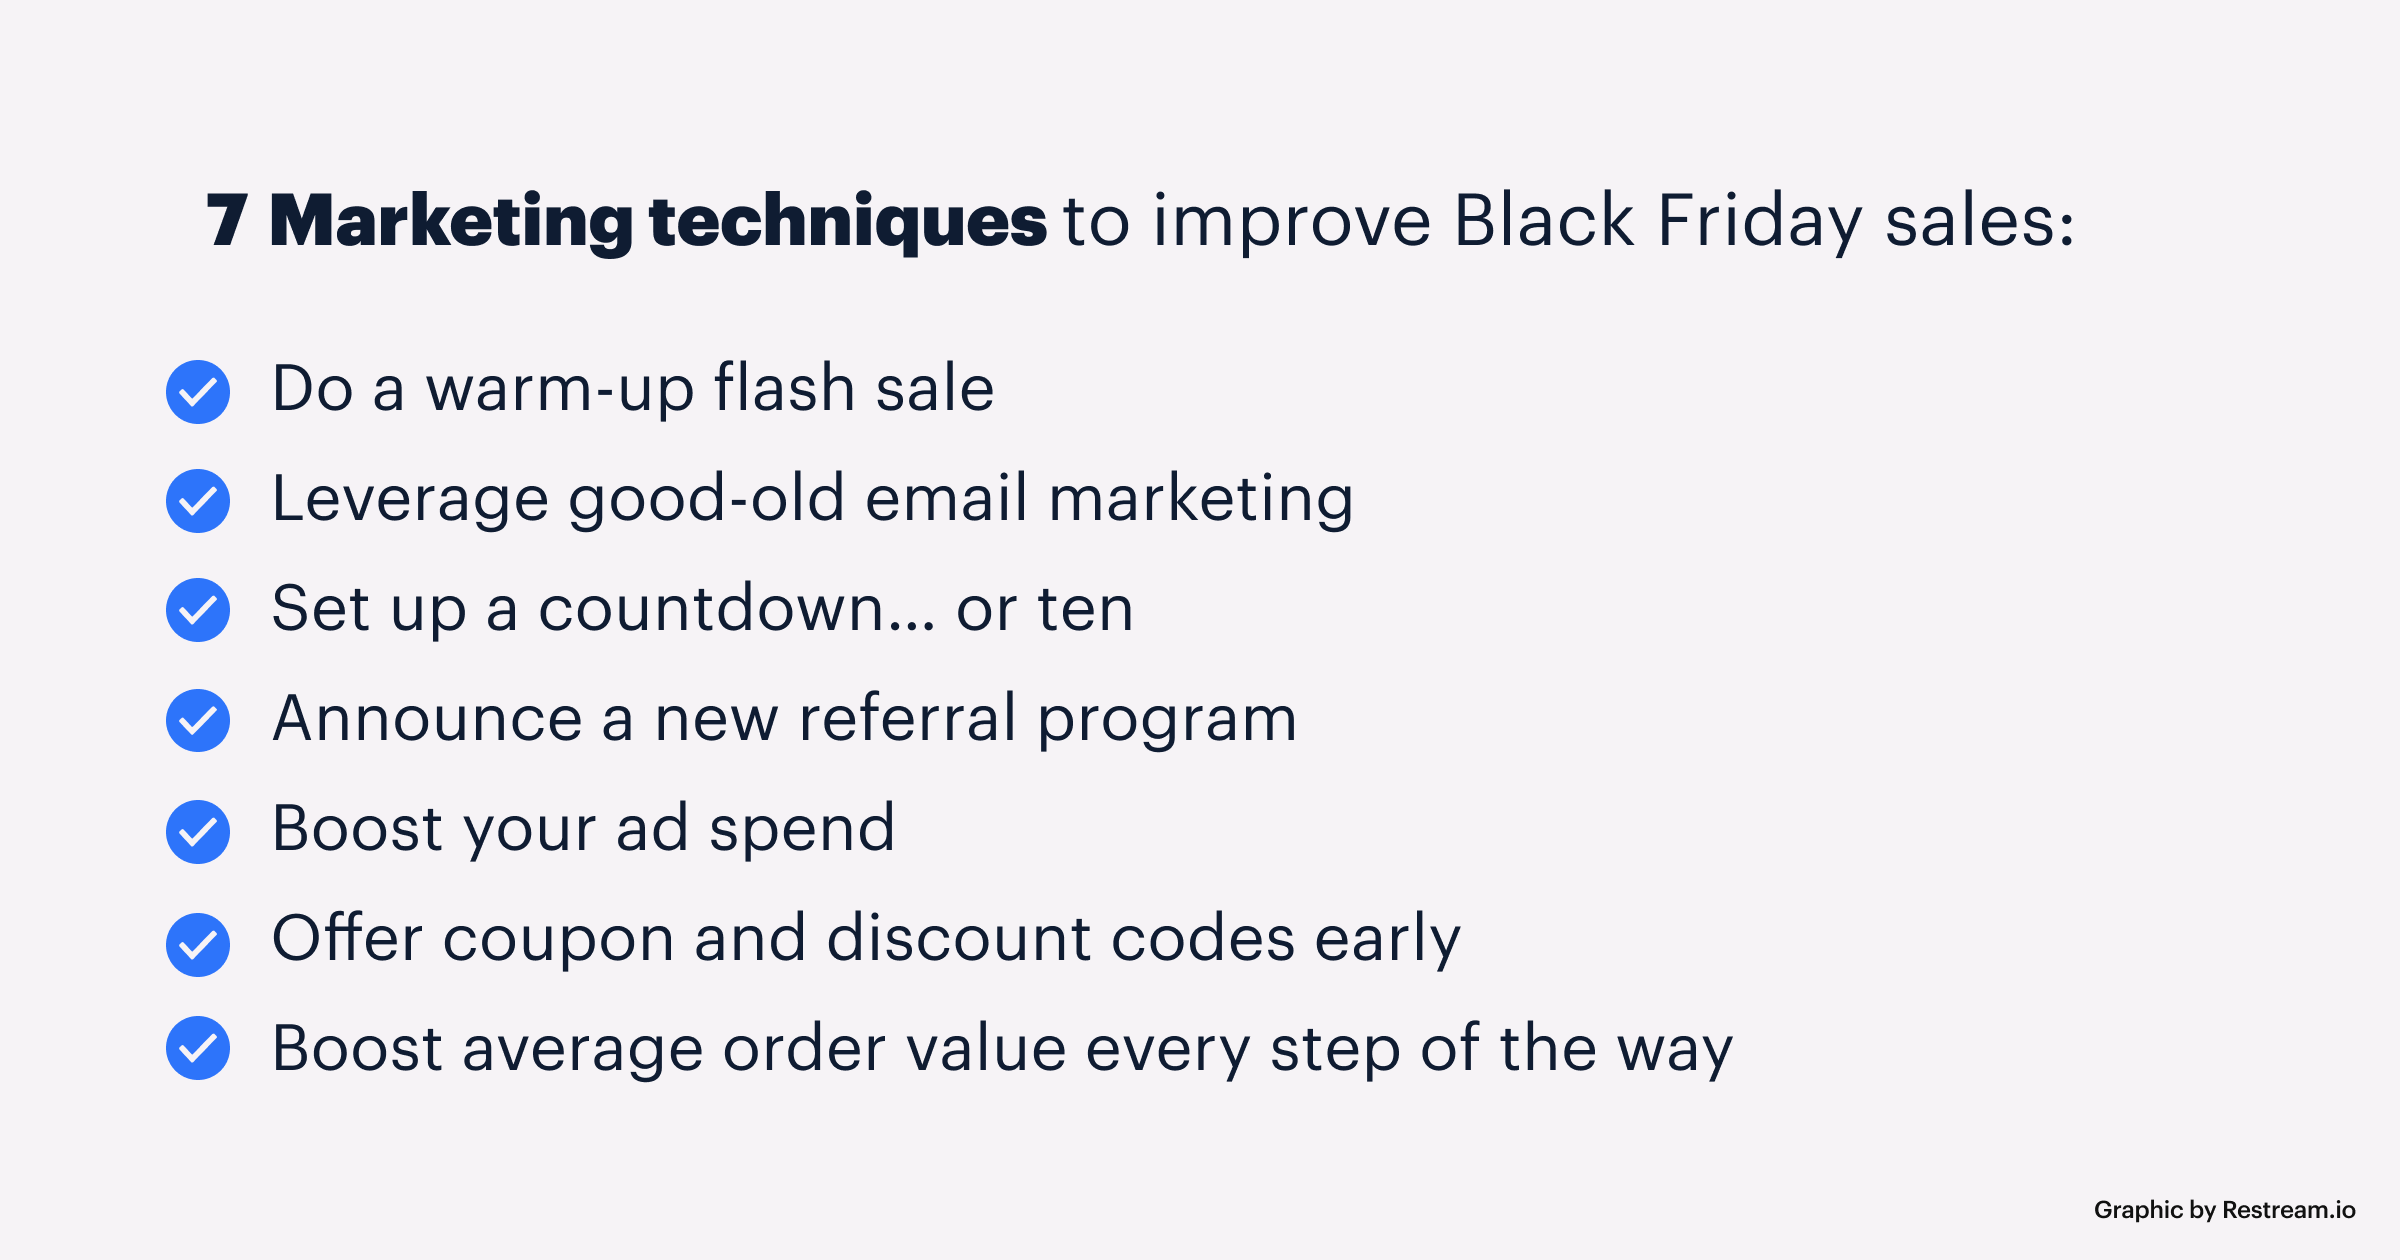 7 marketing techniques to improve Black Friday sales